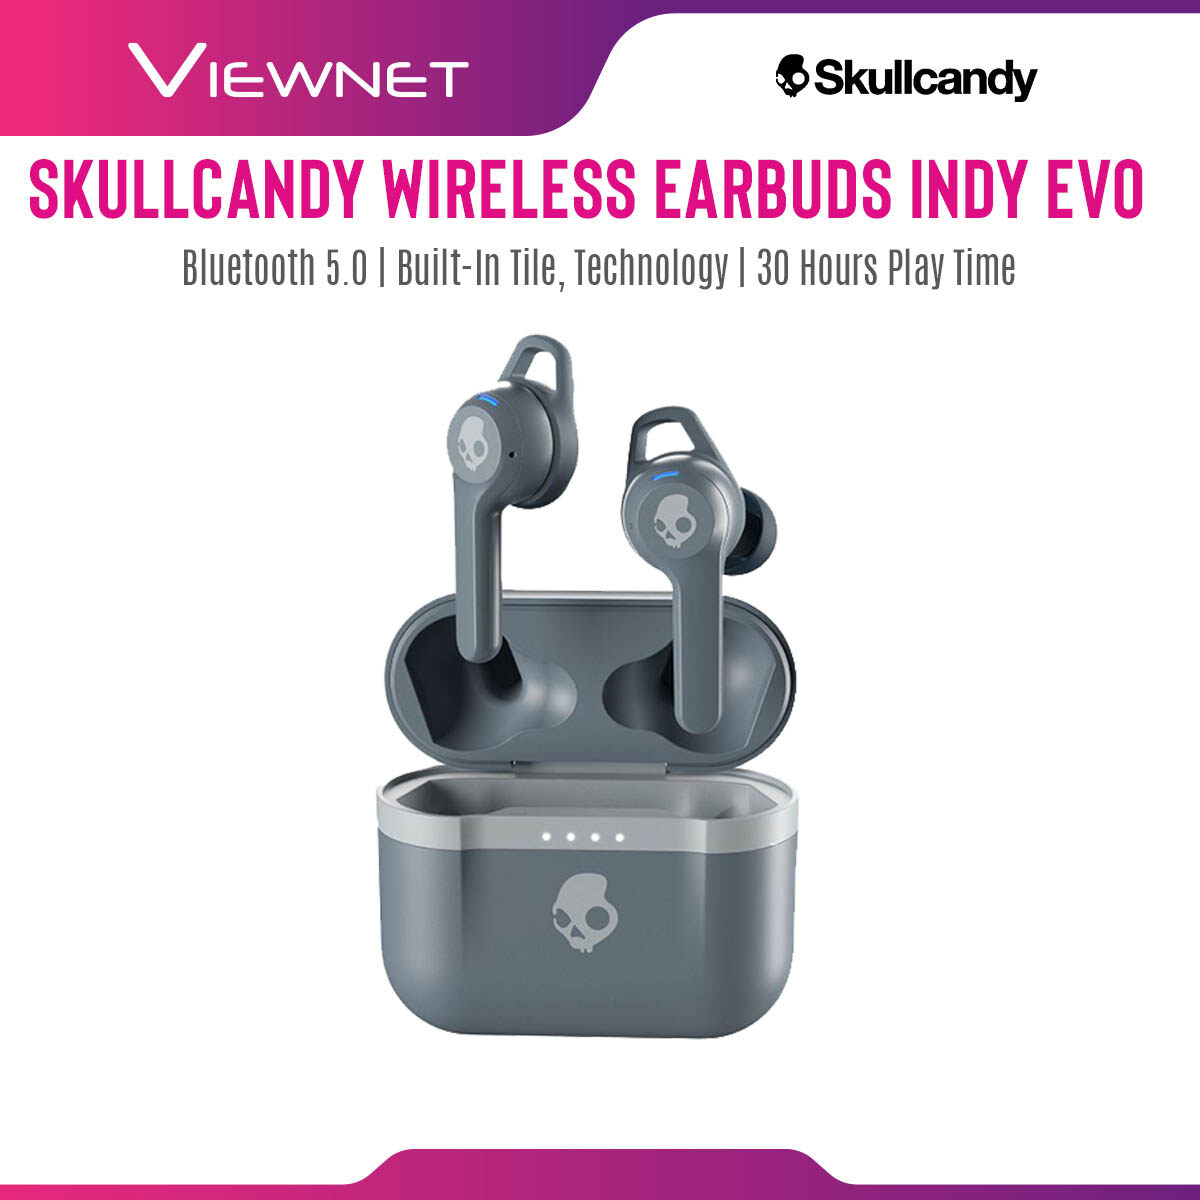 """Skullcandy Wireless Earbuds Indy Evo with Bluetooth 5.0, Built-in Tileâ""""¢ Technology, 30 Hour Play Time, IP55 Sweat Resistant, Water Resistant And Dust Resistant, 3 EQ Modes (Music, Movie, Podcast)"""